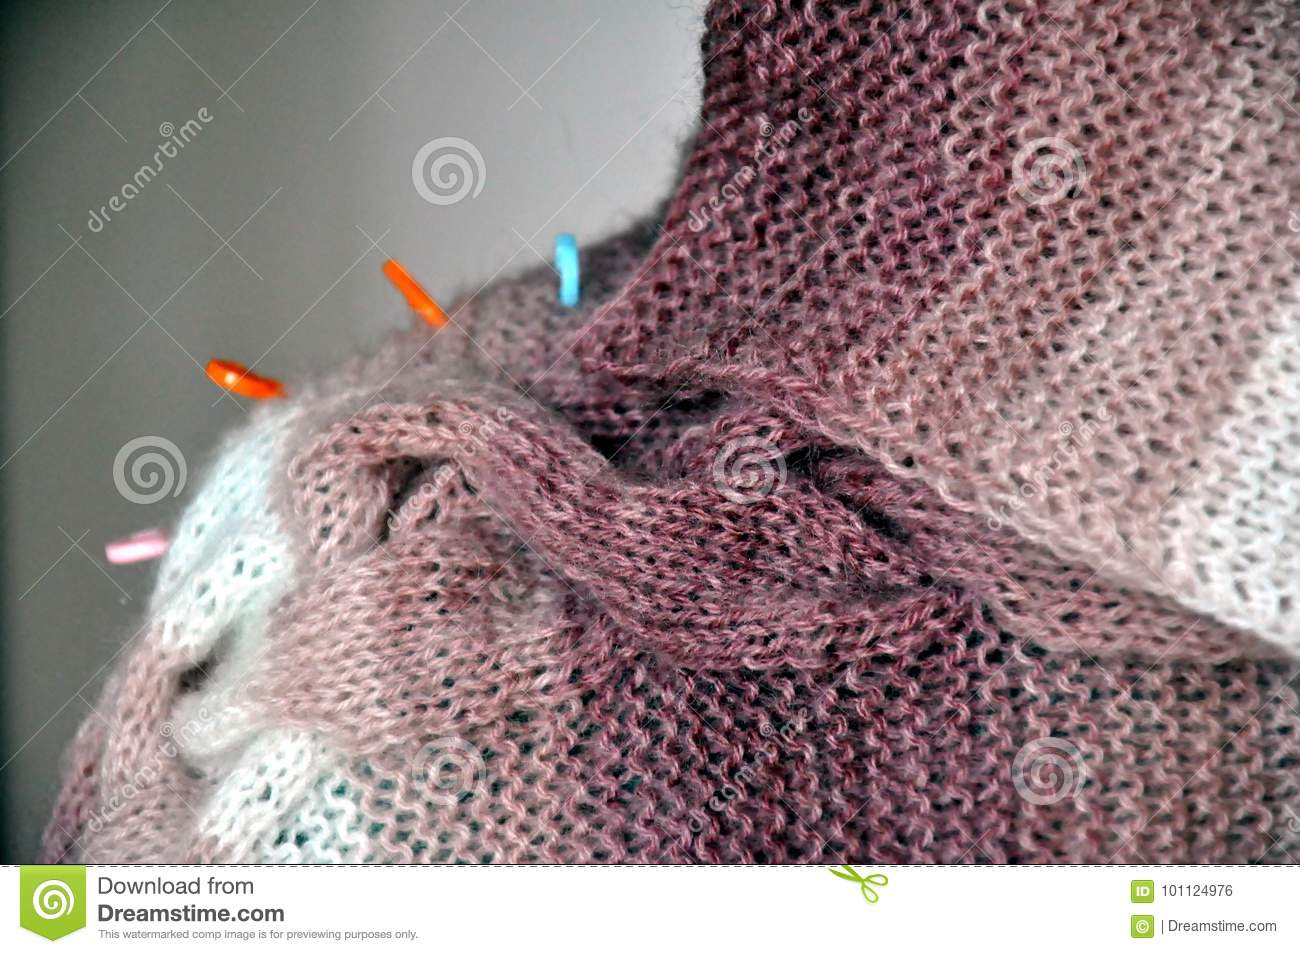 Knitting from a furry yarn stock photo  Image of style - 101124976